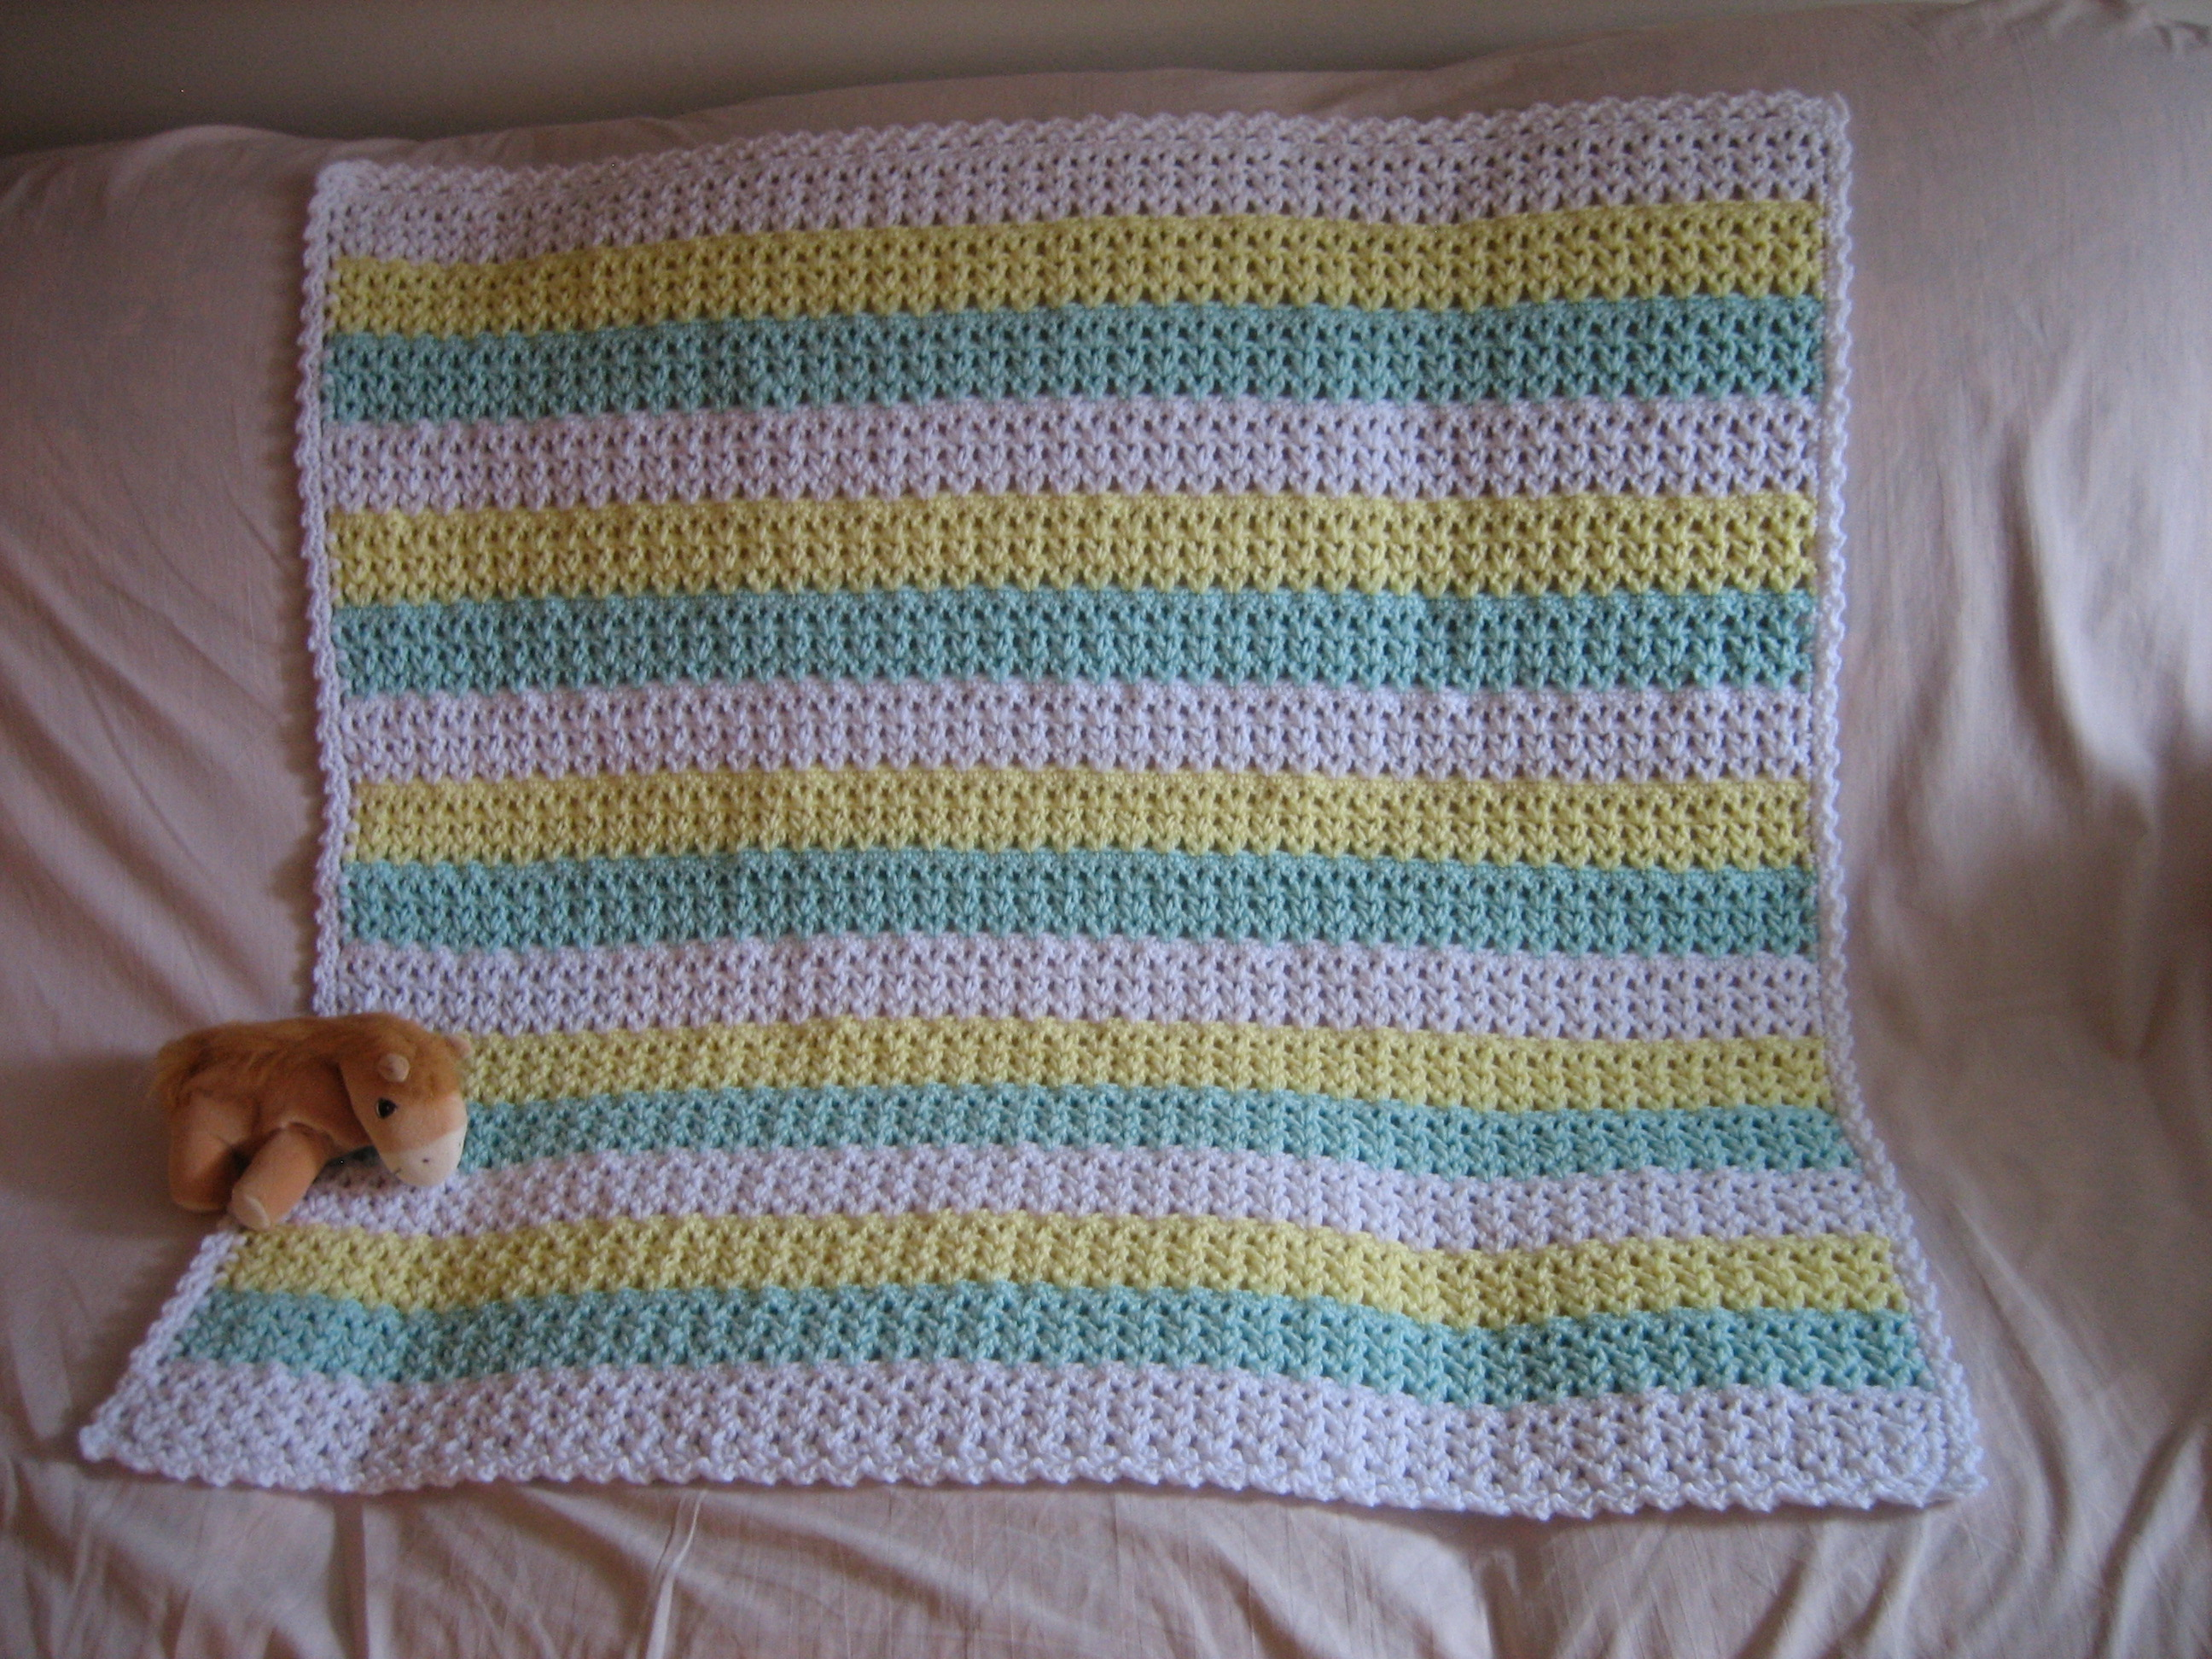 X Stitch Crochet Baby Blanket Pattern : Striped Crochet Afghan FaveCrafts.com